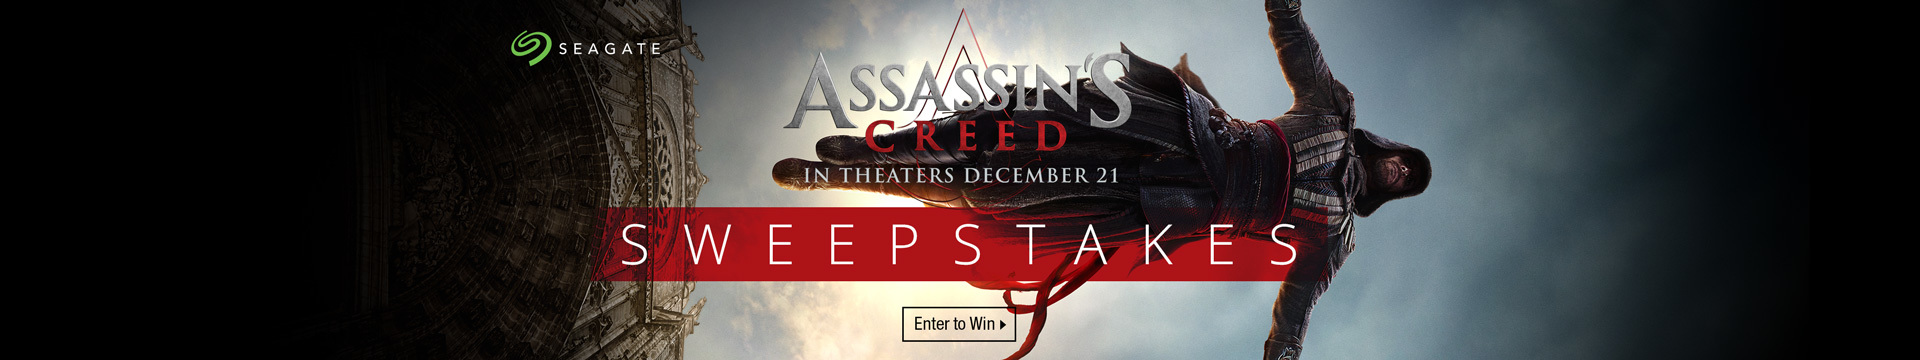 The Seagate Assassin's Creed Sweepstakes